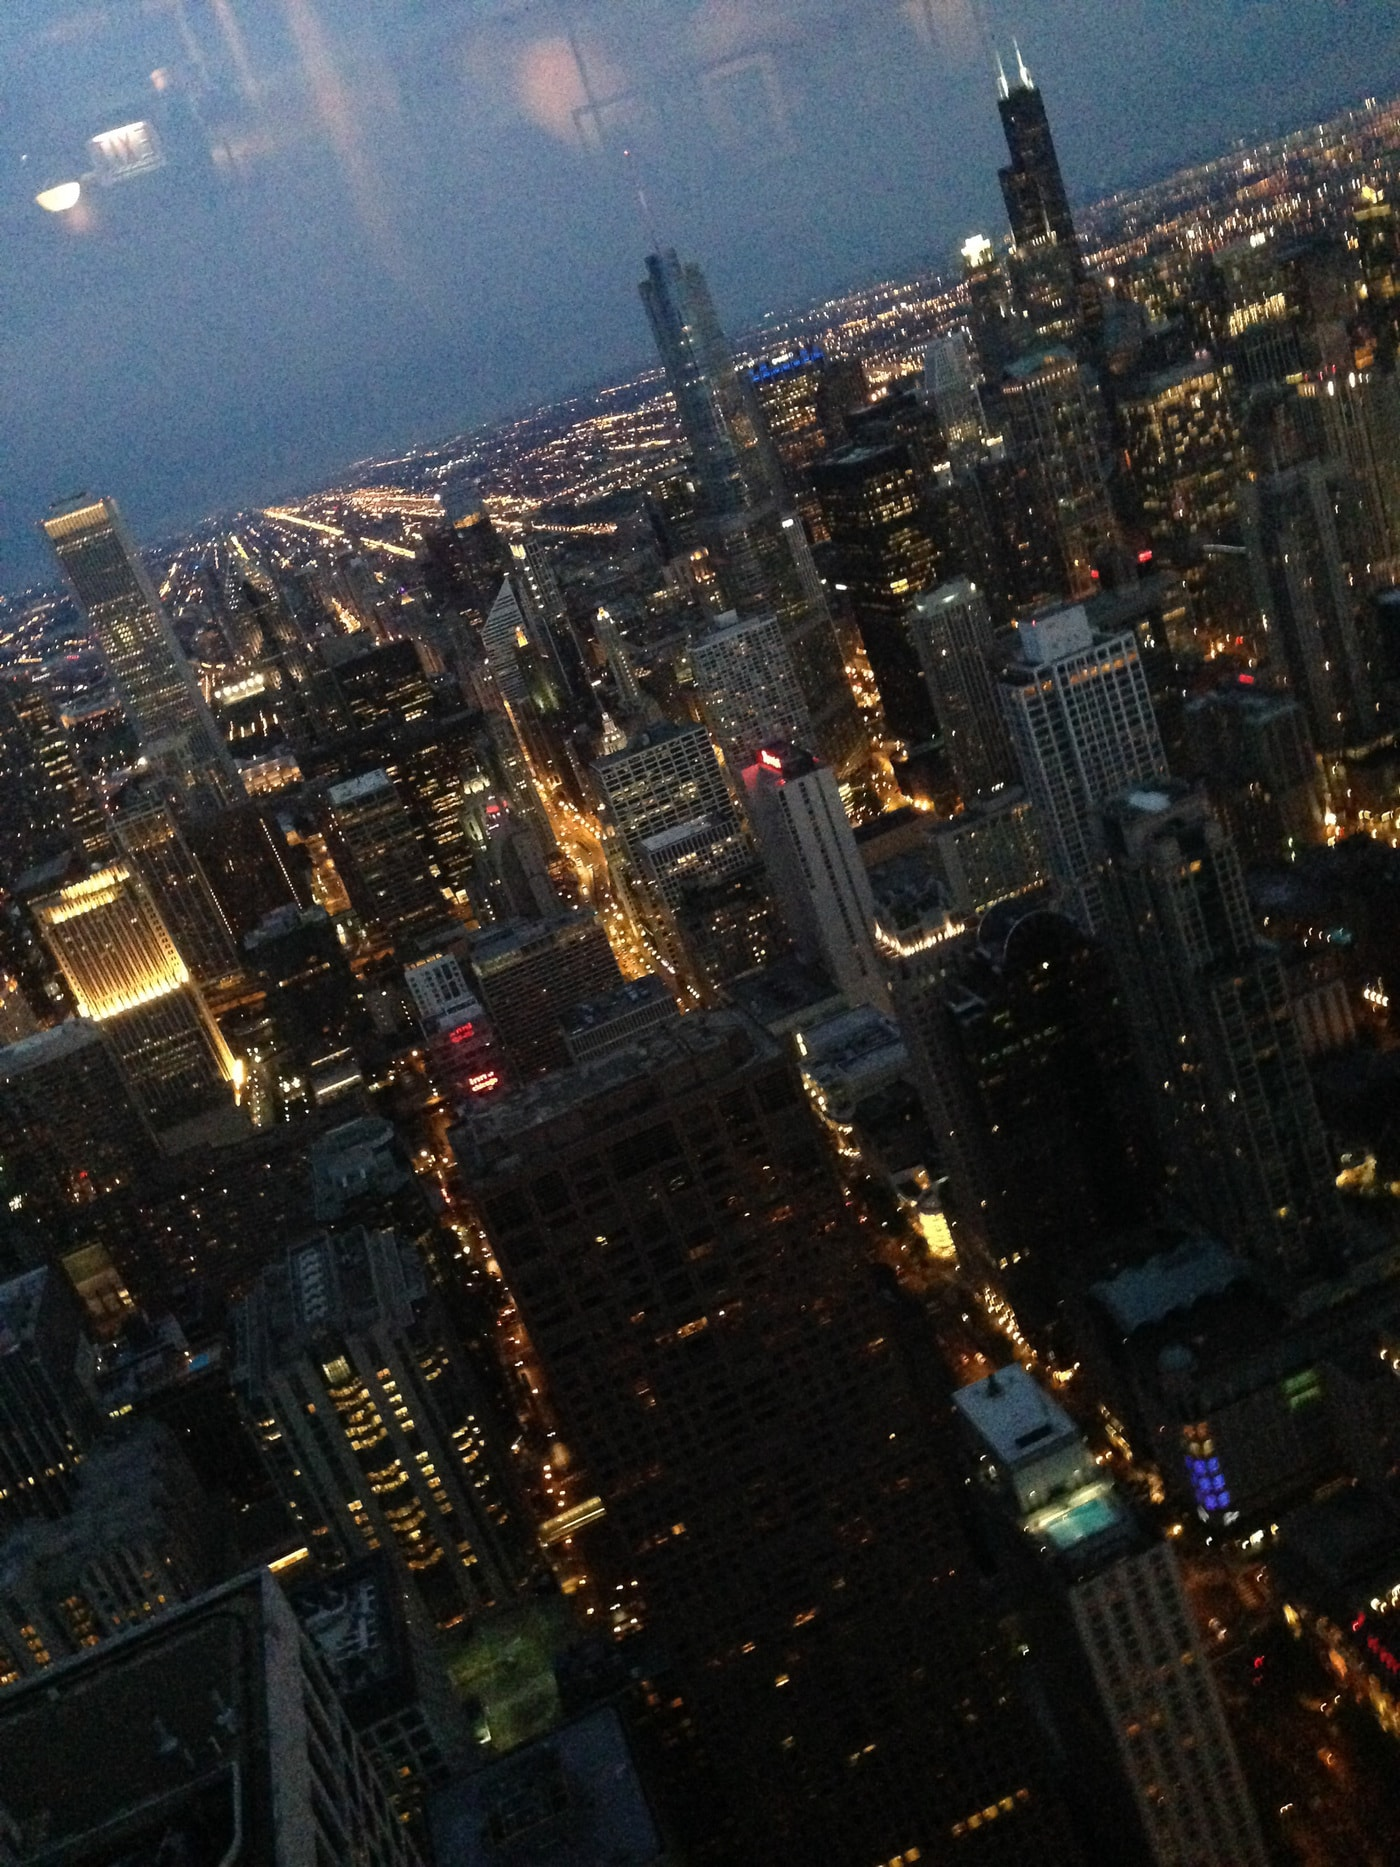 Chicago skyline from The Signature Lounge at the top of the John Hancock Center in Chicago, Illinois